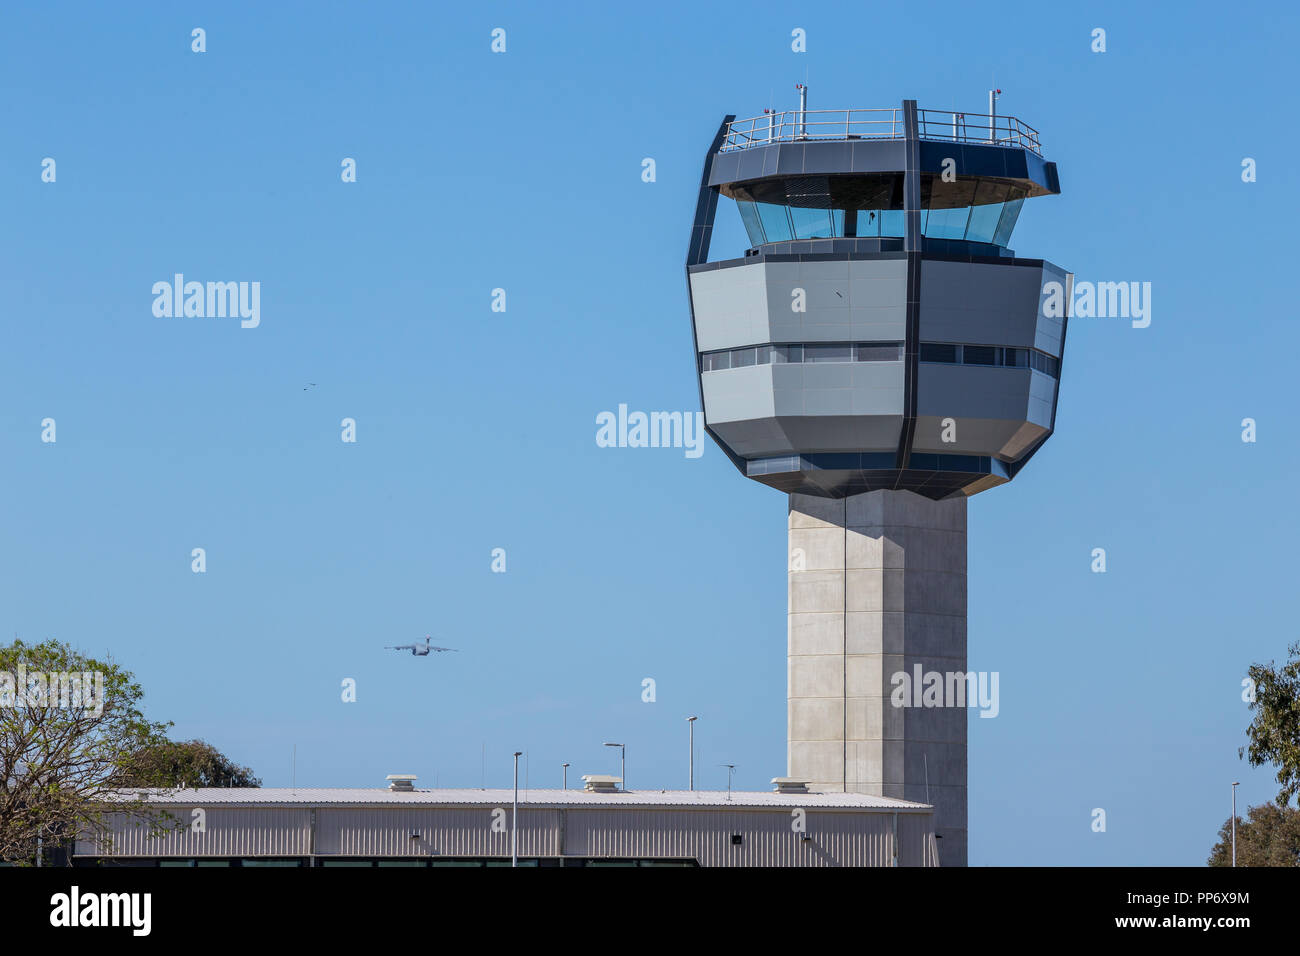 Military Airport, Royal Australian Air Force Base Amberley new control tower, a C17 Globemaster taking off to the left of the tower. - Stock Image